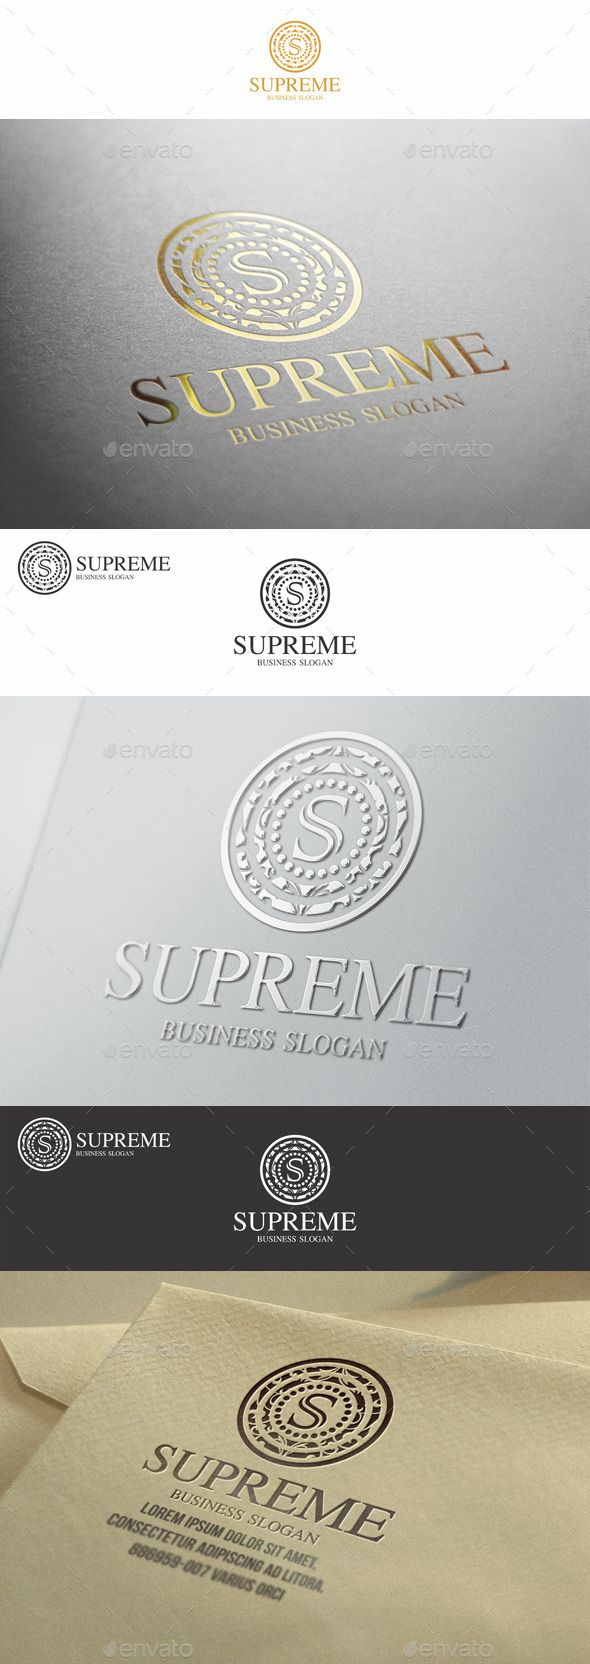 Supreme S Letter Elegant Boutique Logo Design Template